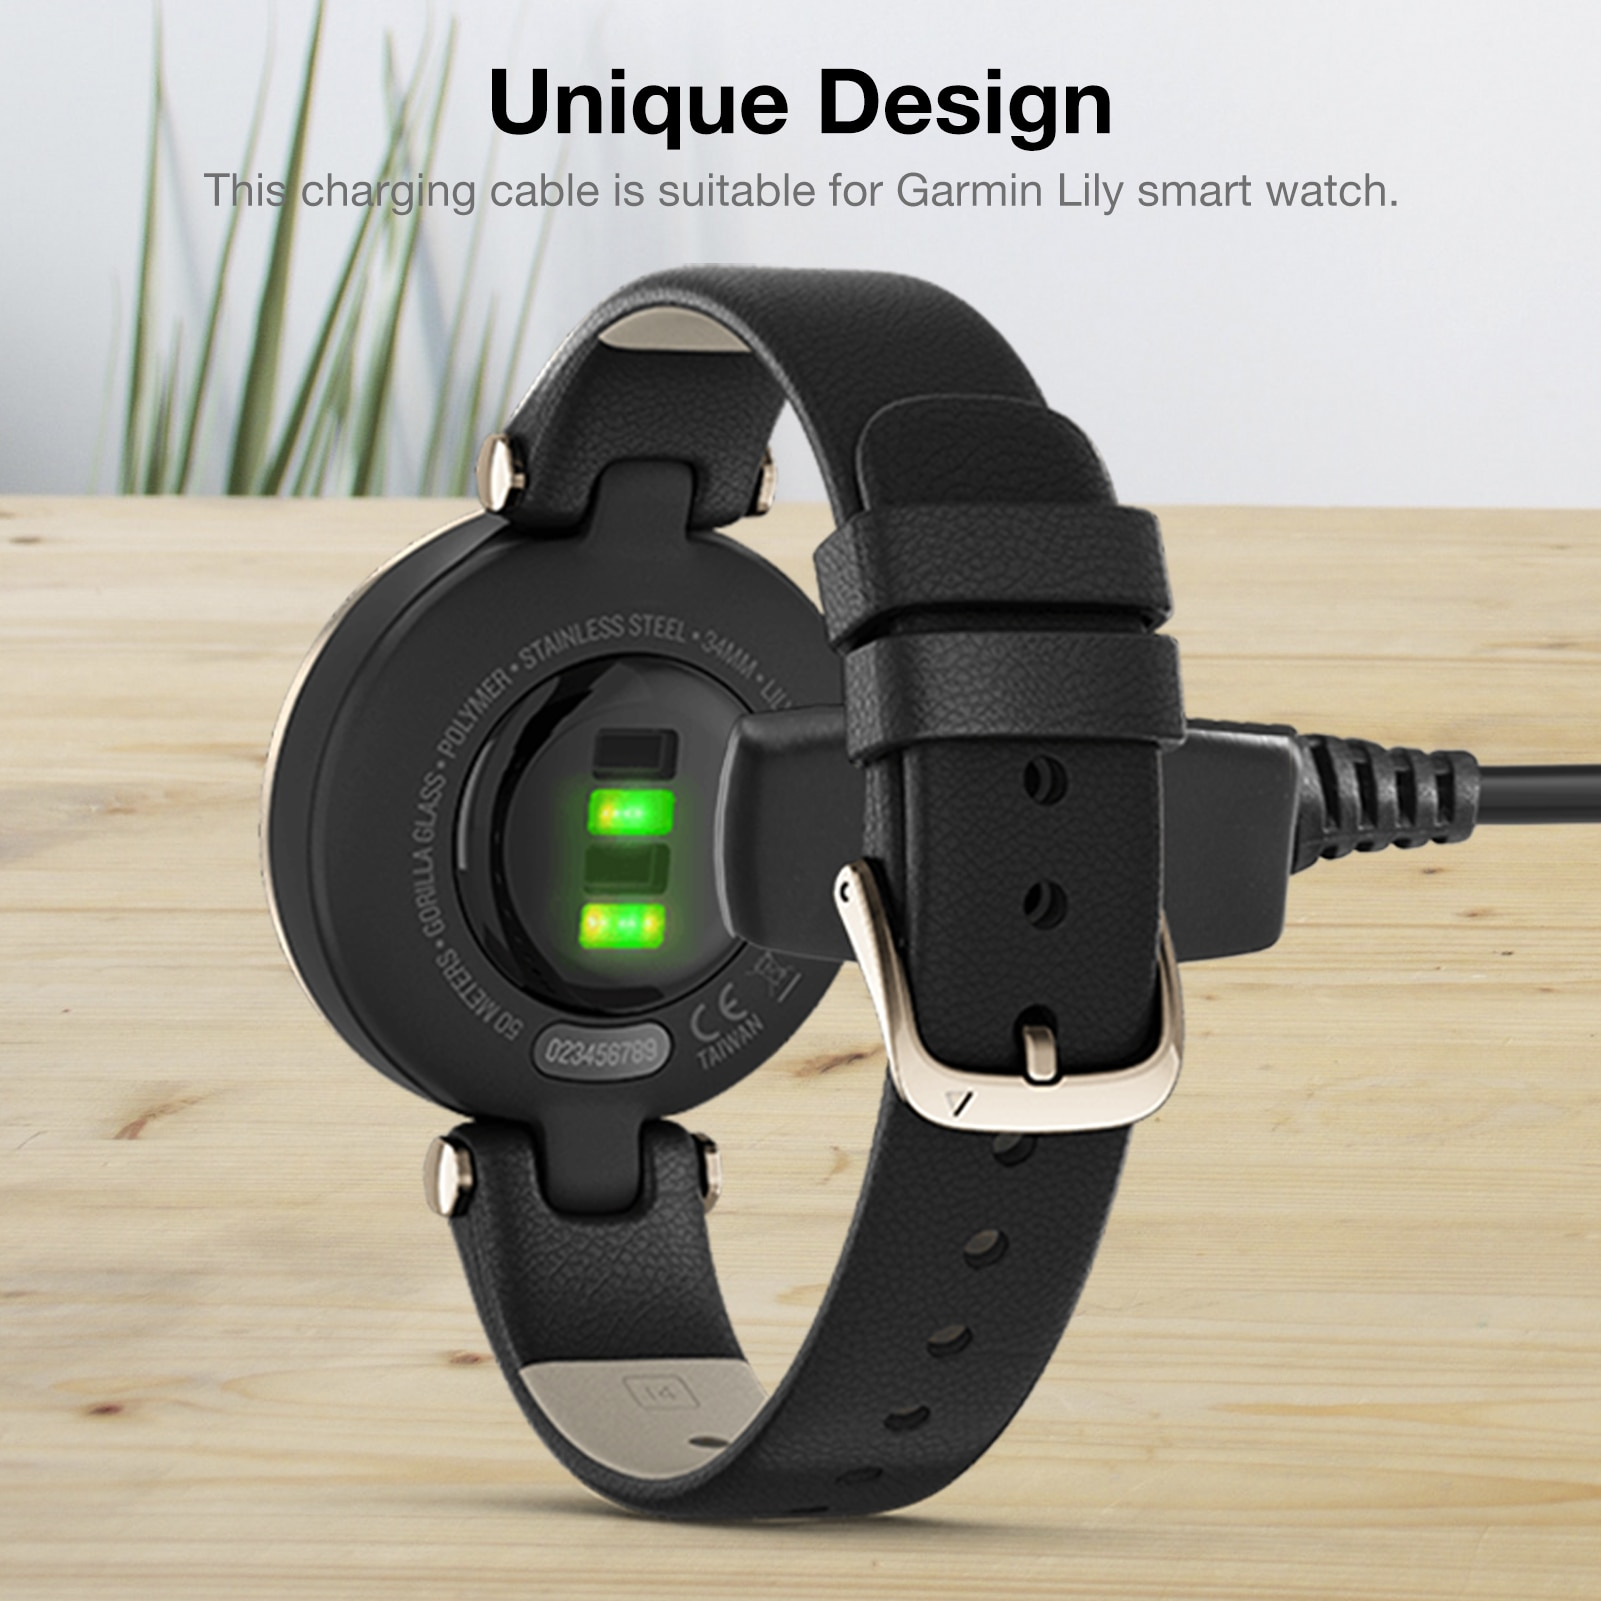 Charger Dock Magnetic USB Charging Cable For Garmin Lily Smart Wa Charging Data Cable Intelligent Wearable Accessories